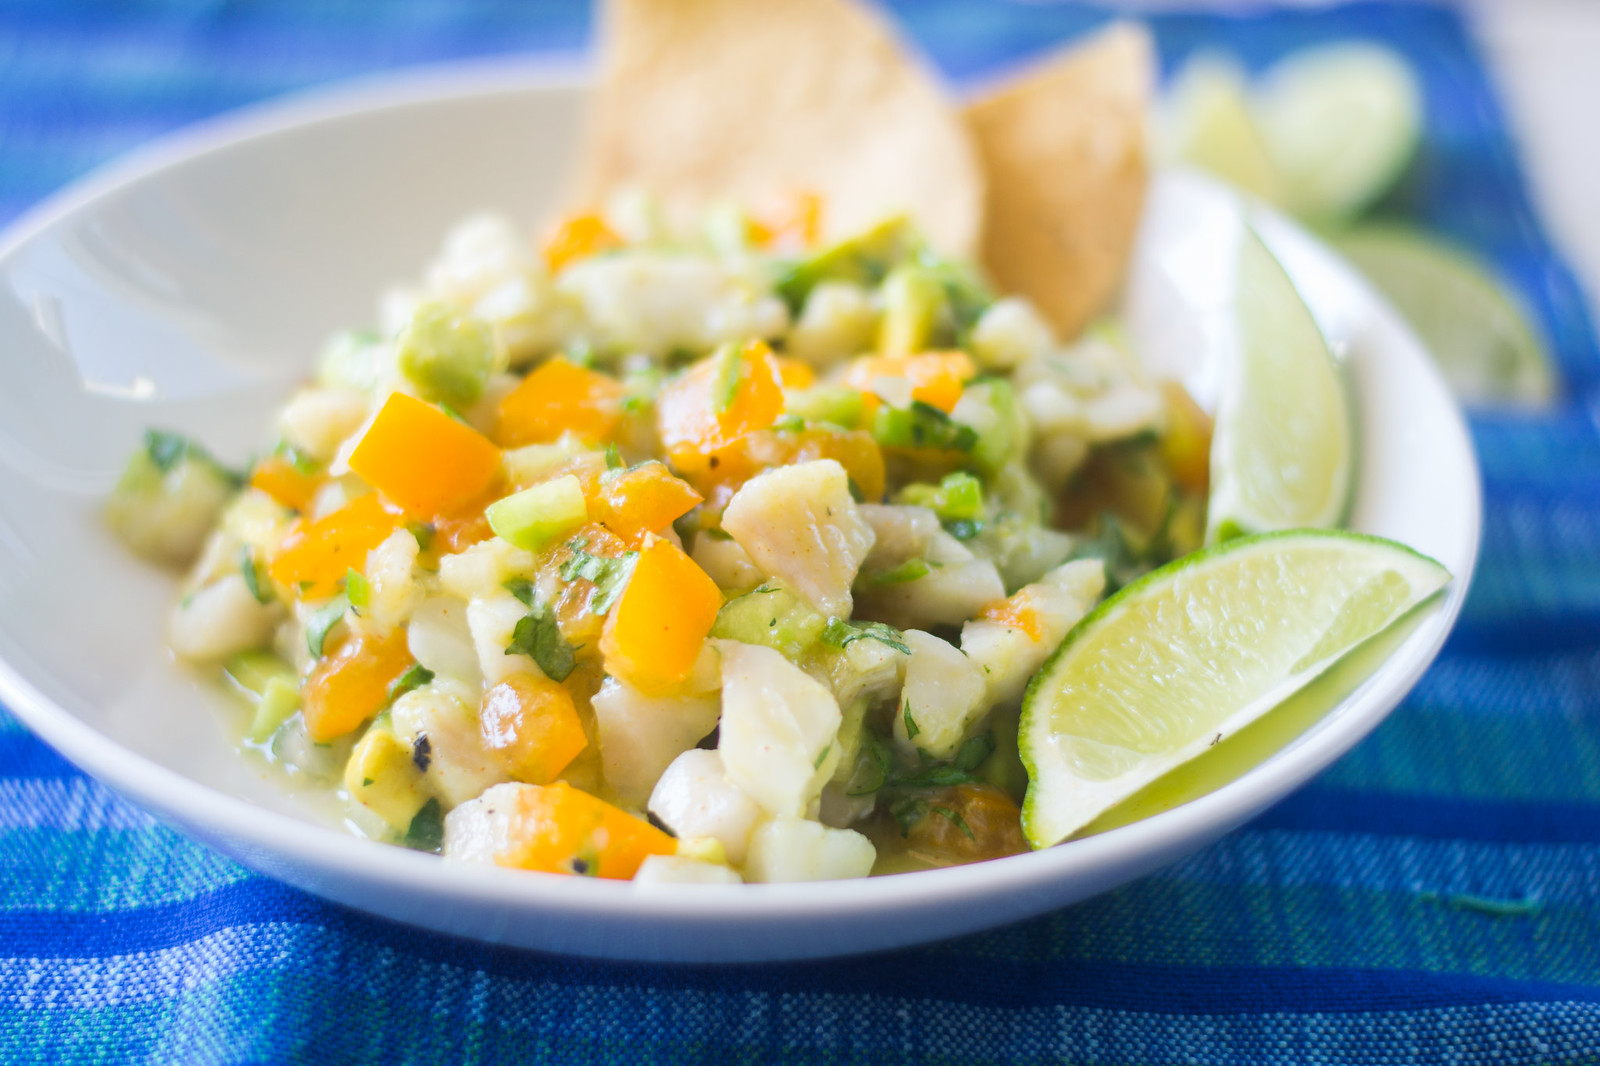 Tilapia Ceviche full of bright citrus juice and cool flavors of avocado, tomato and cucumber. The perfect summer bite! via LittleFerraroKitchen.com